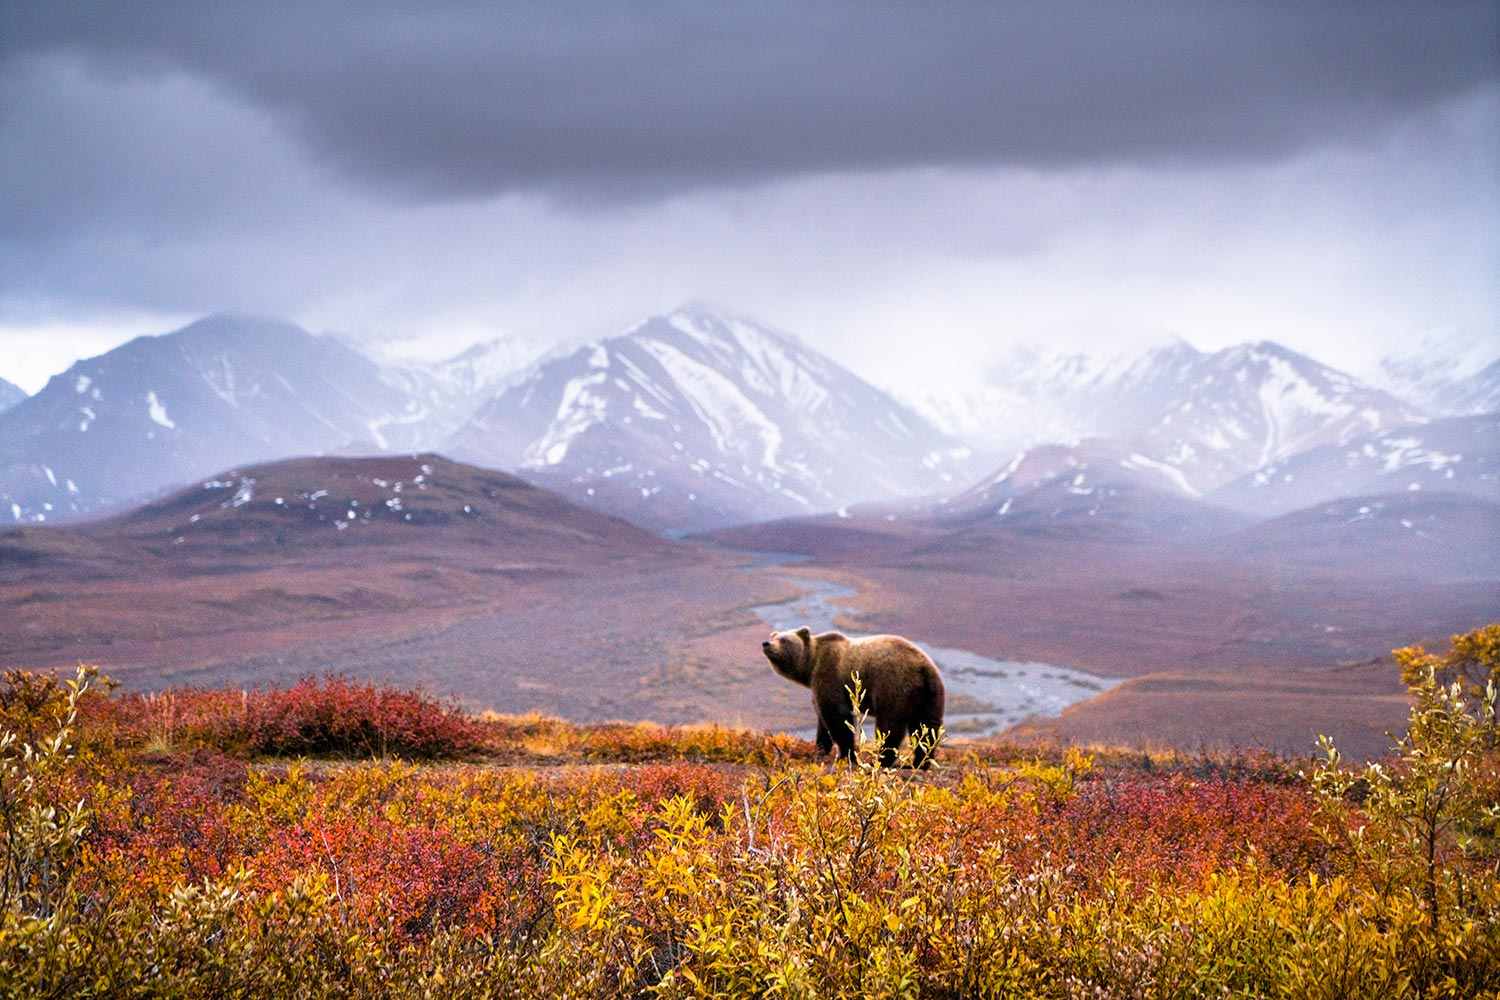 Chris Burkard, Denali National Park Grizzly, Alaska